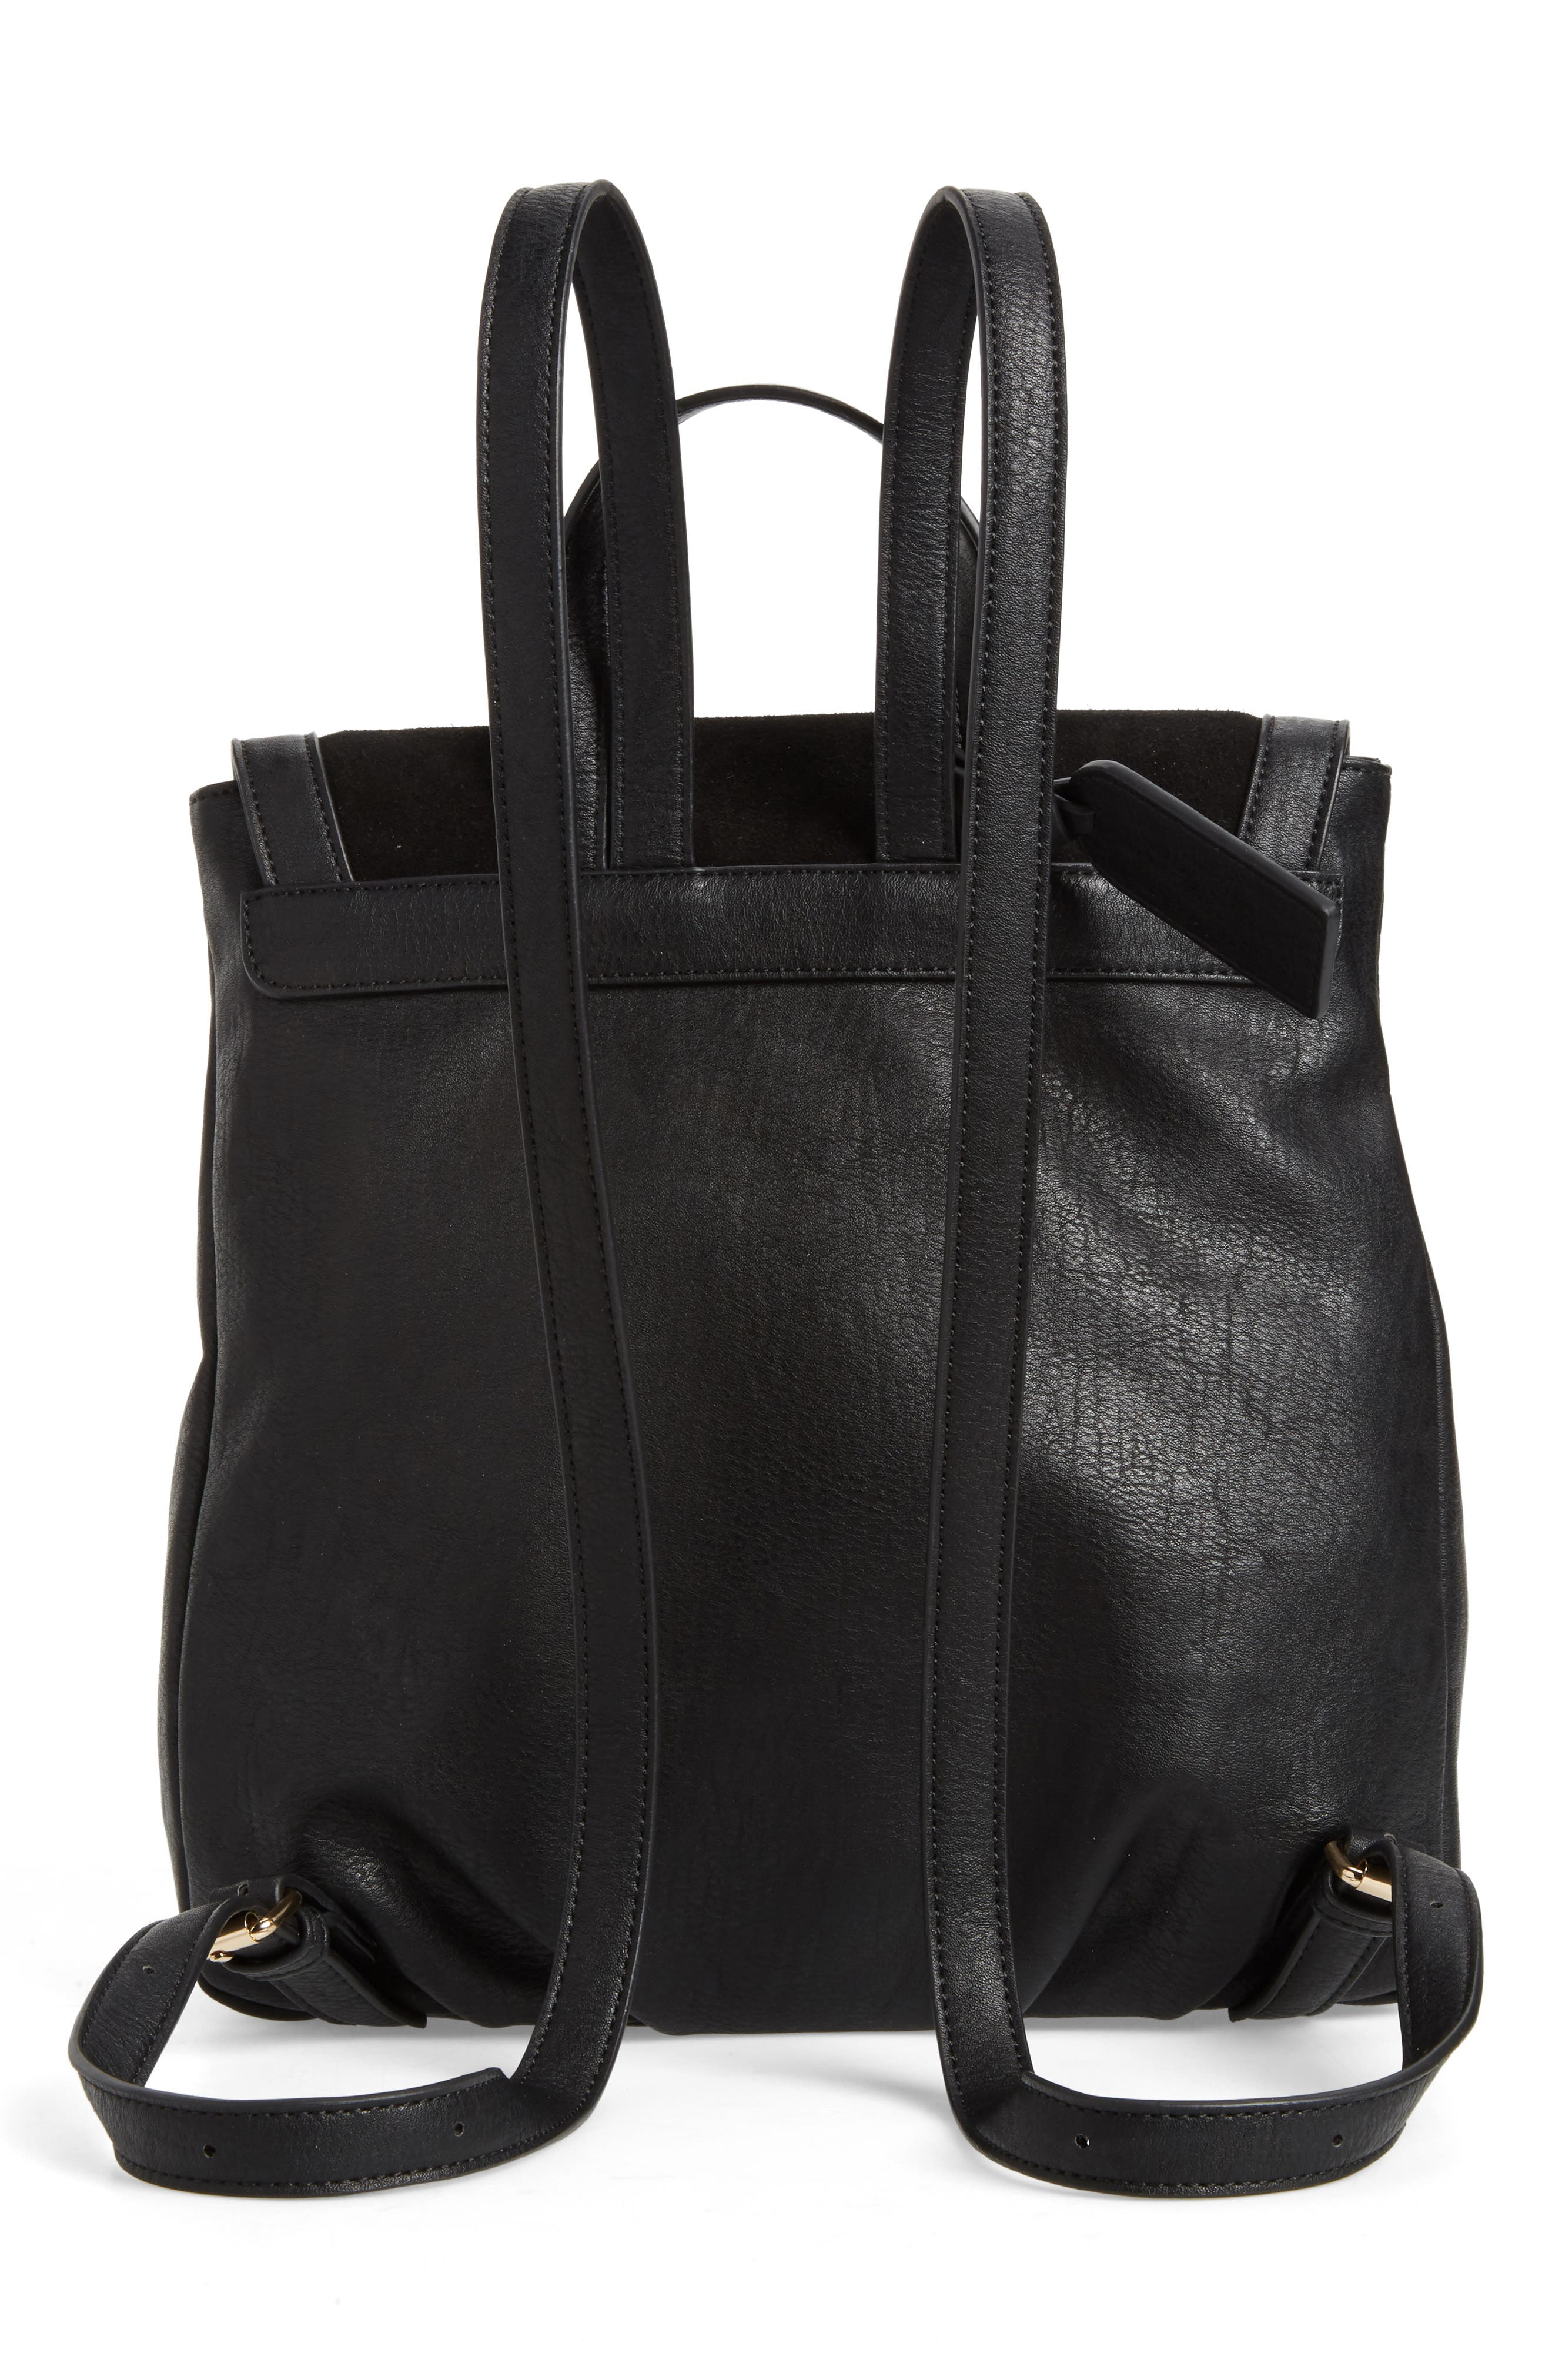 SOLE SOCIETY, Chele Backpack, Alternate thumbnail 4, color, 001